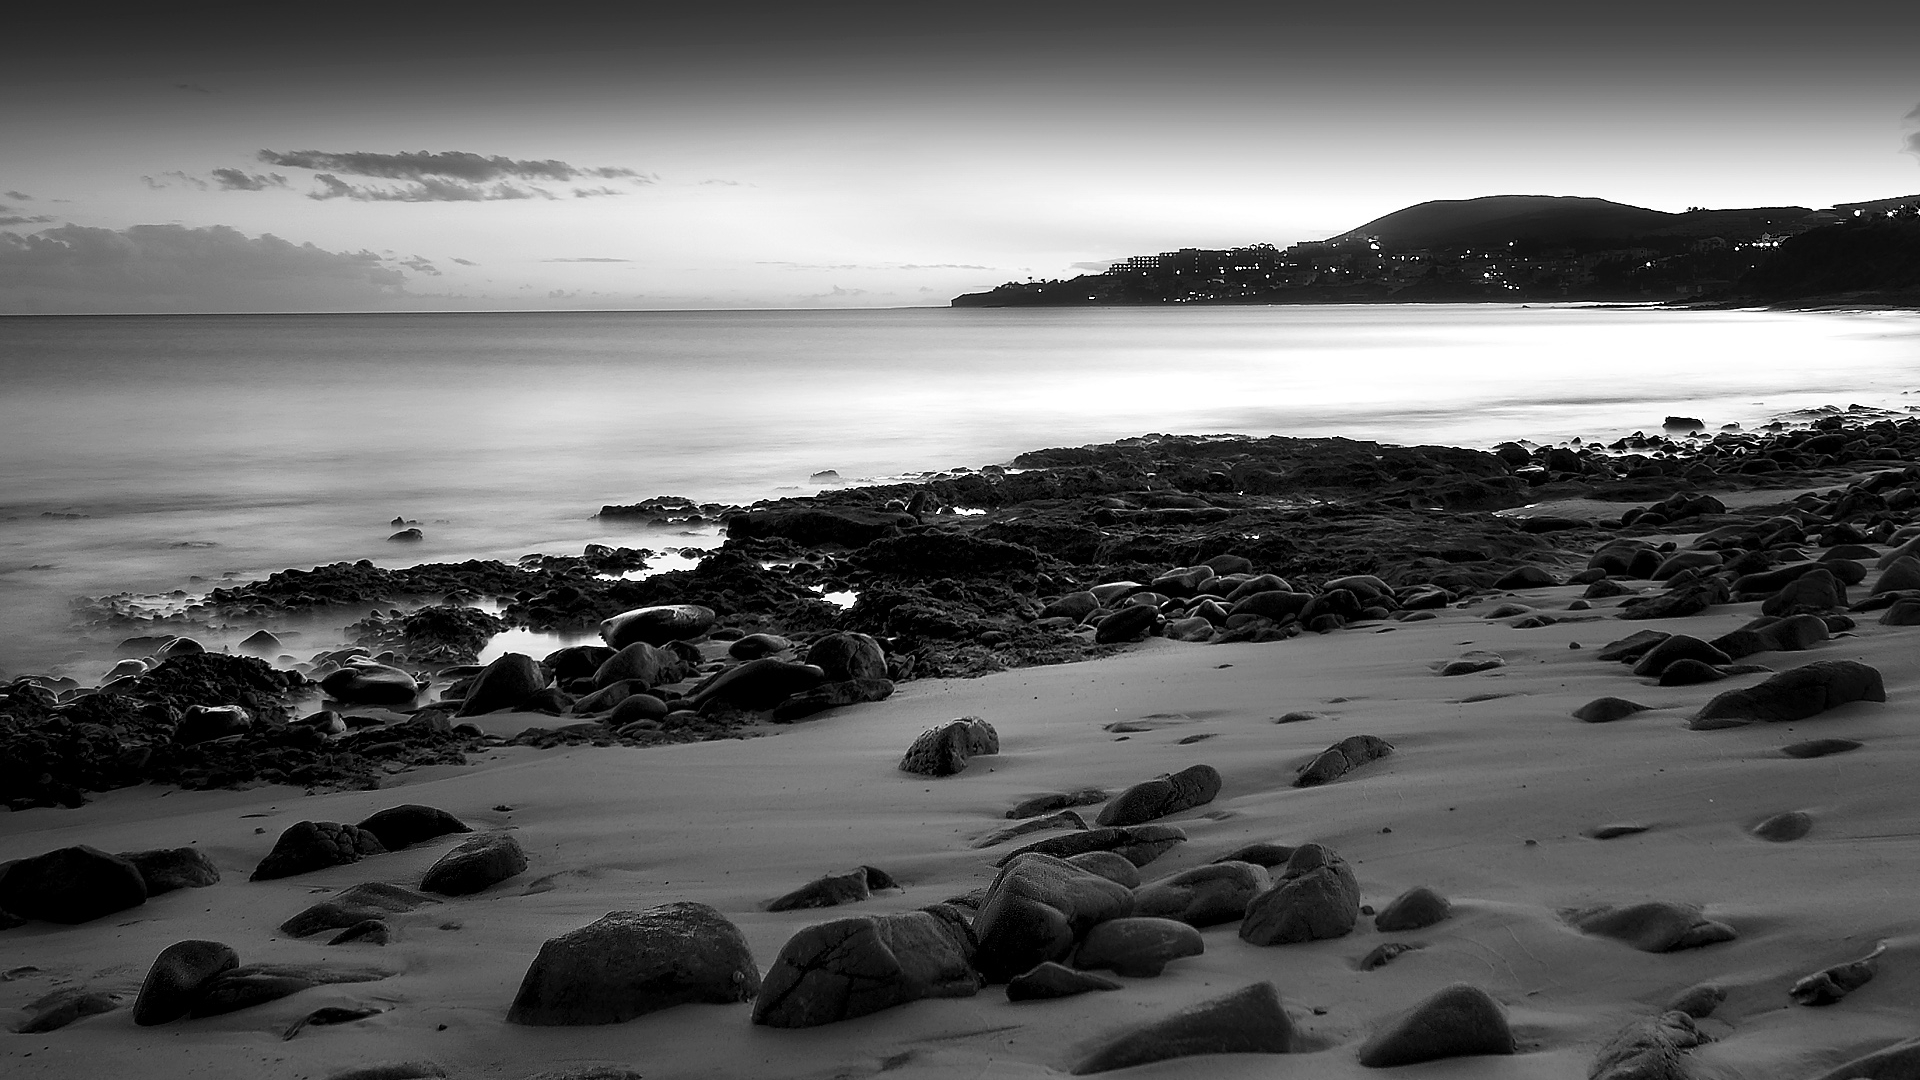 Black and white beach wallpaper hd wallpapers - Black and white hd wallpapers black background ...